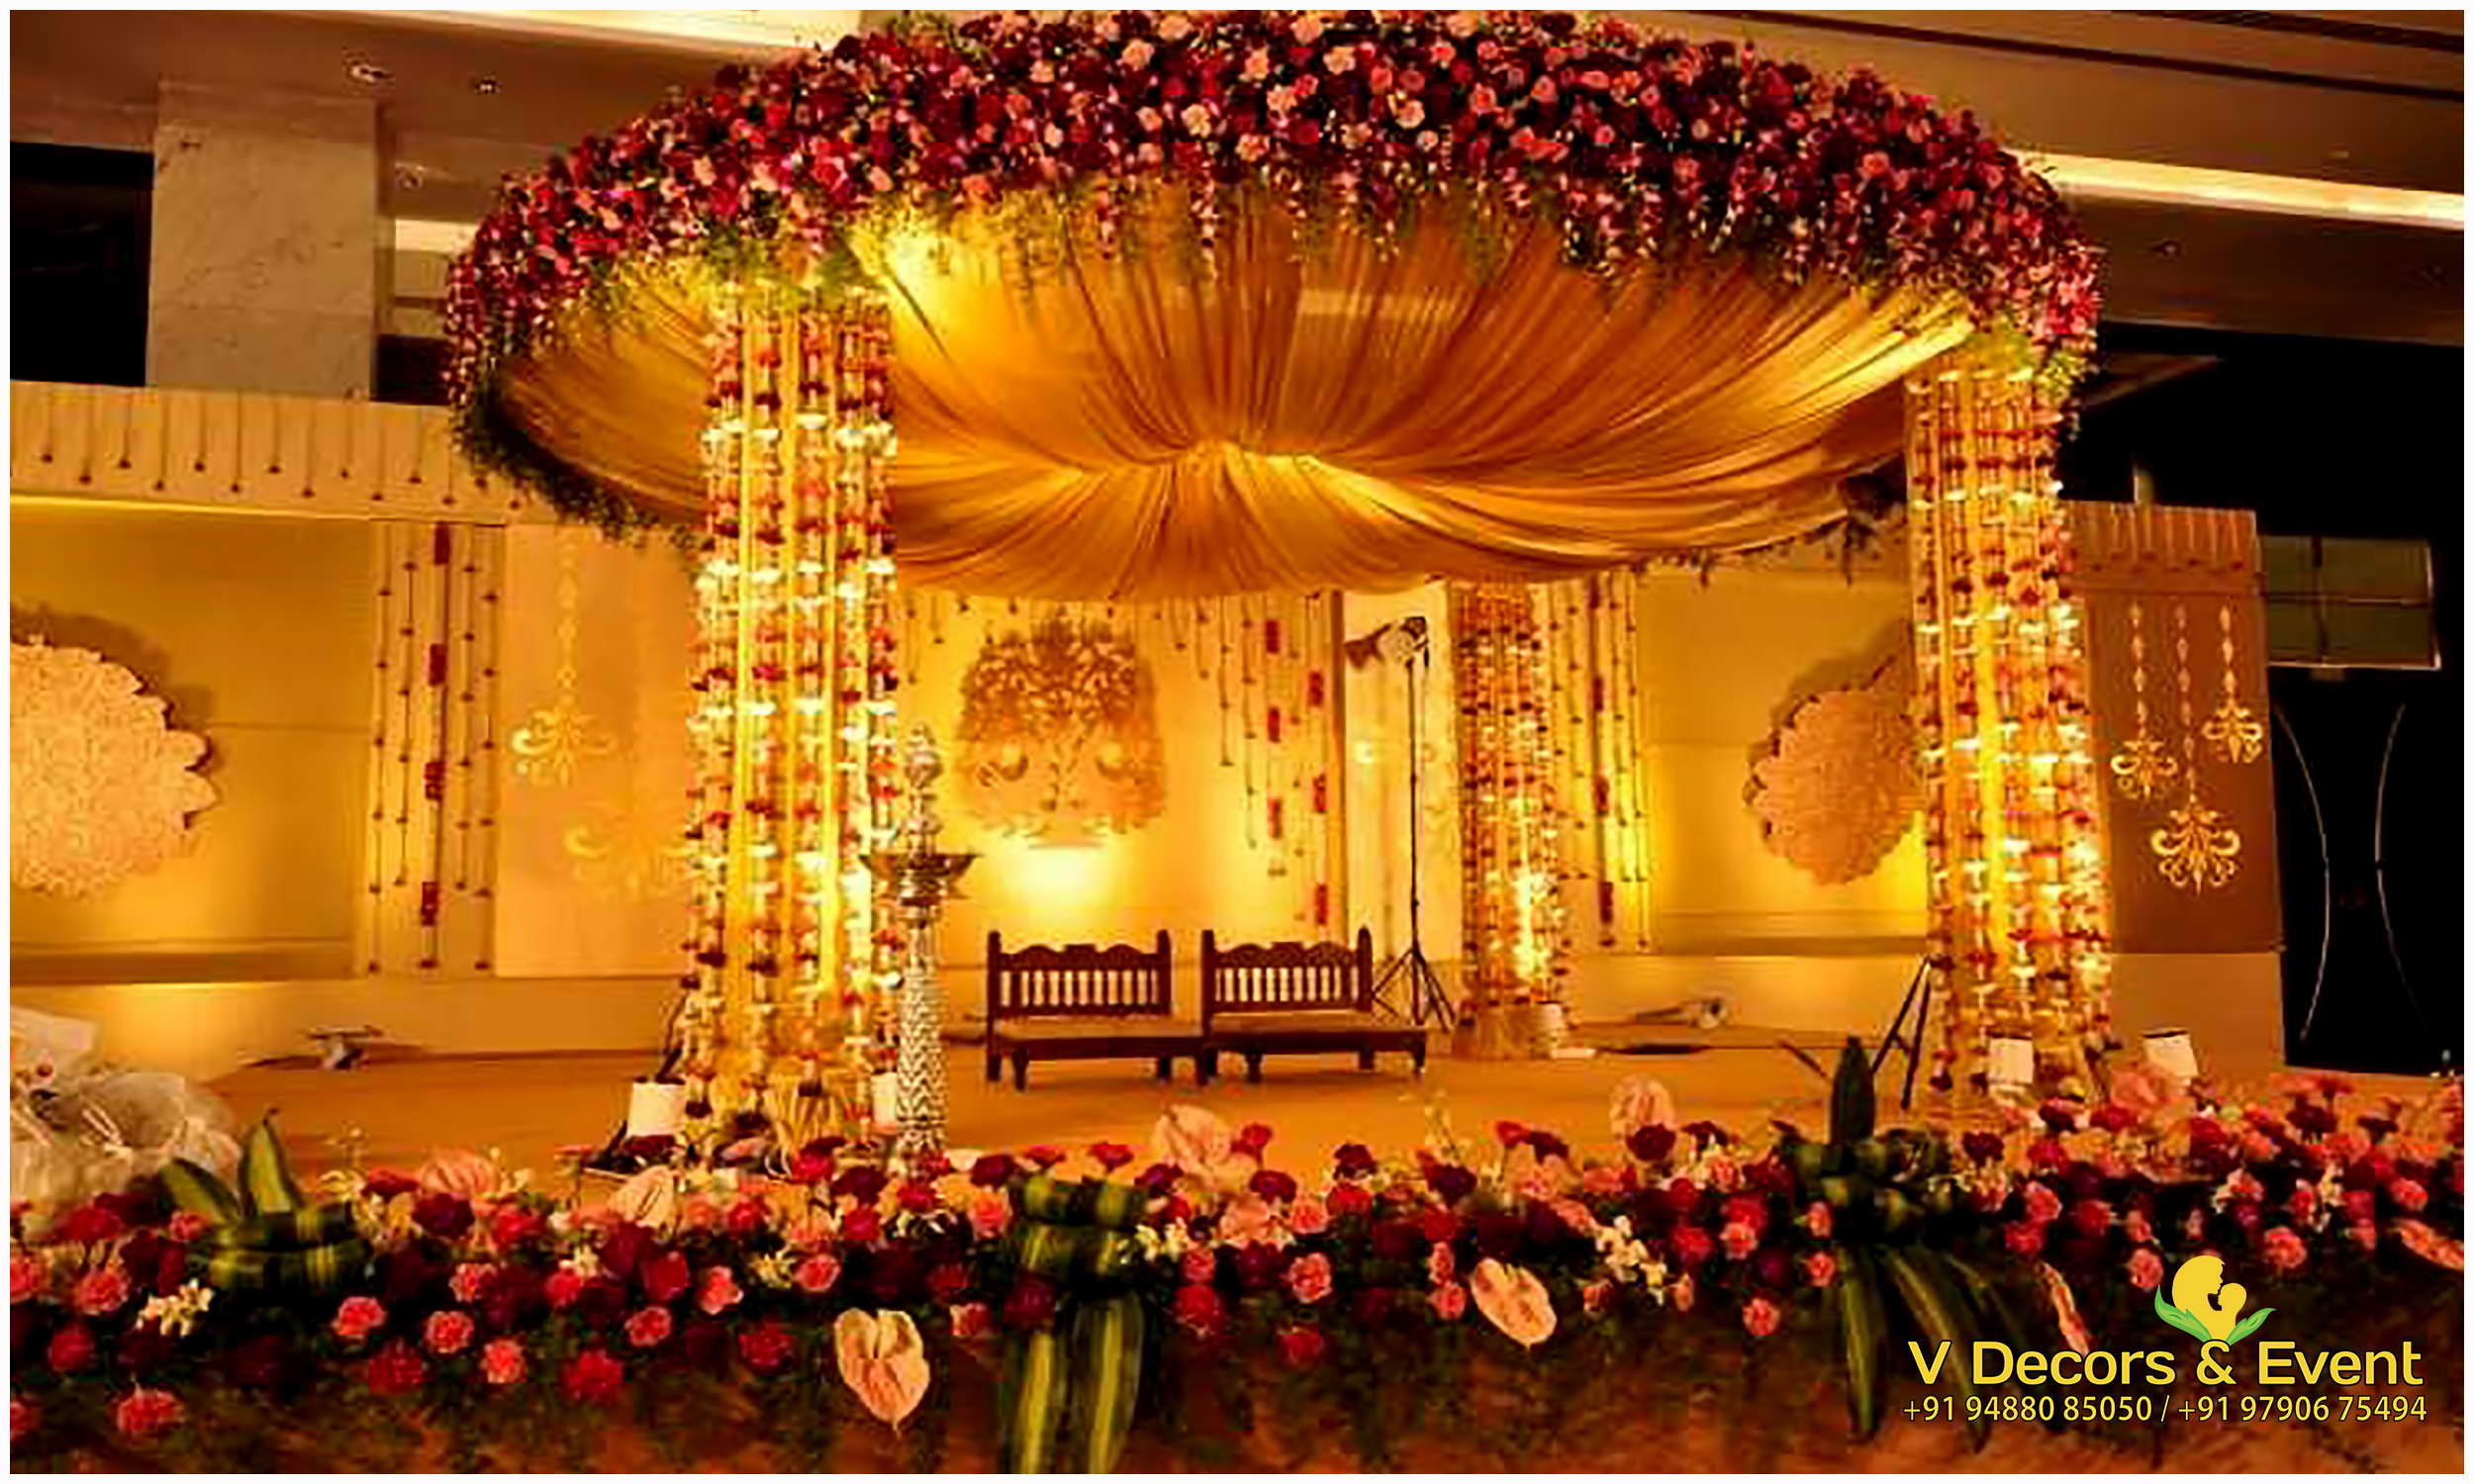 decor wedding asian quality are photos by decoration decorations flickr b we stage stag